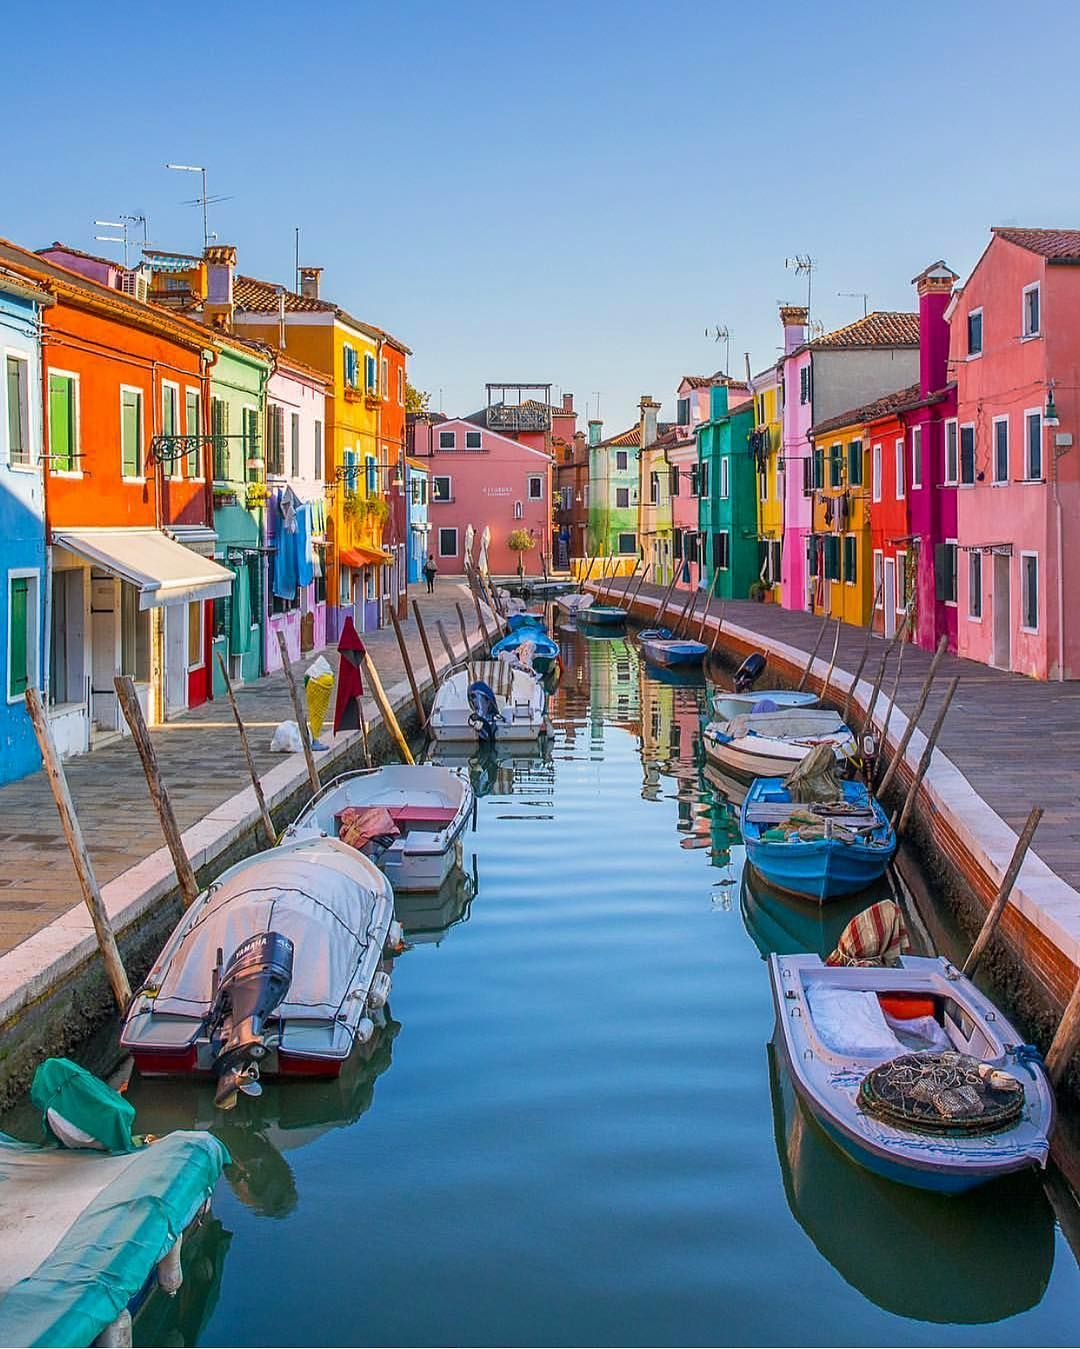 I always love discovering new cool offbeat places to add to my bucket list.How many of these incredible places do you know?